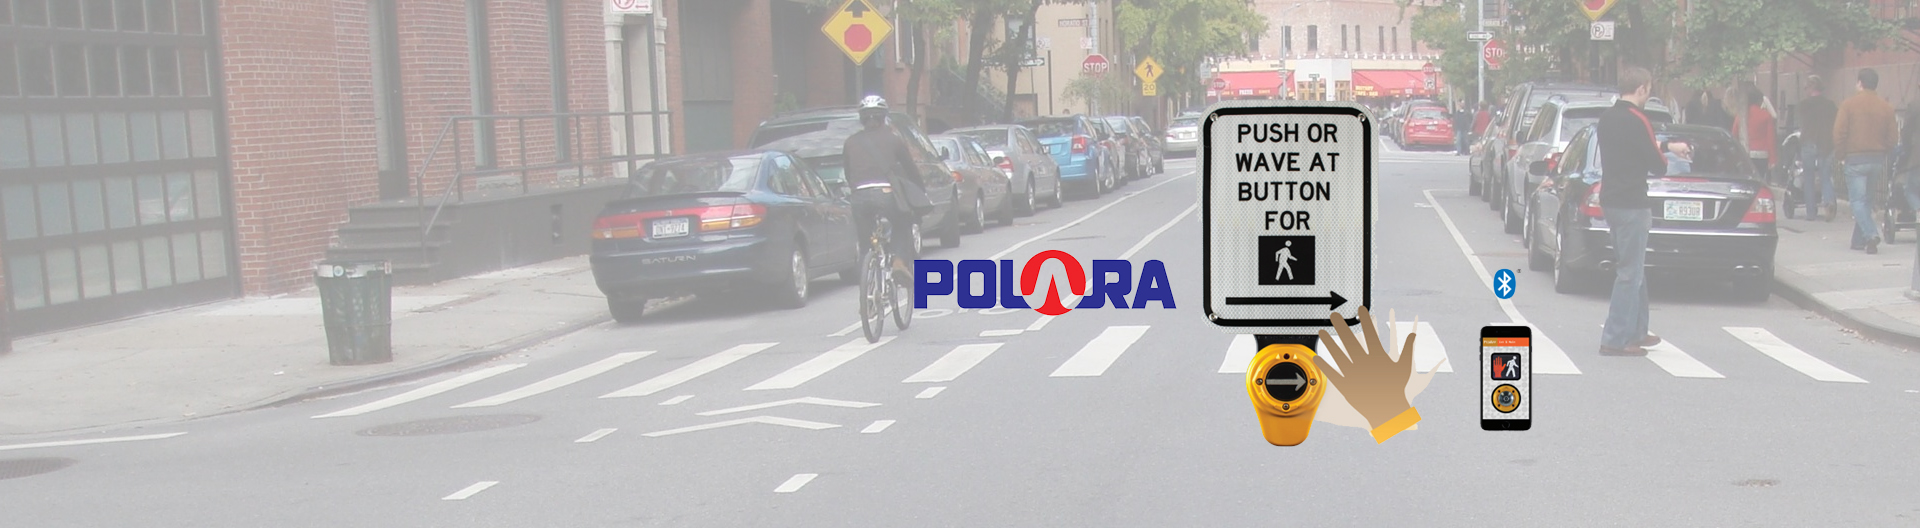 Polara traffic control iDetect Banner